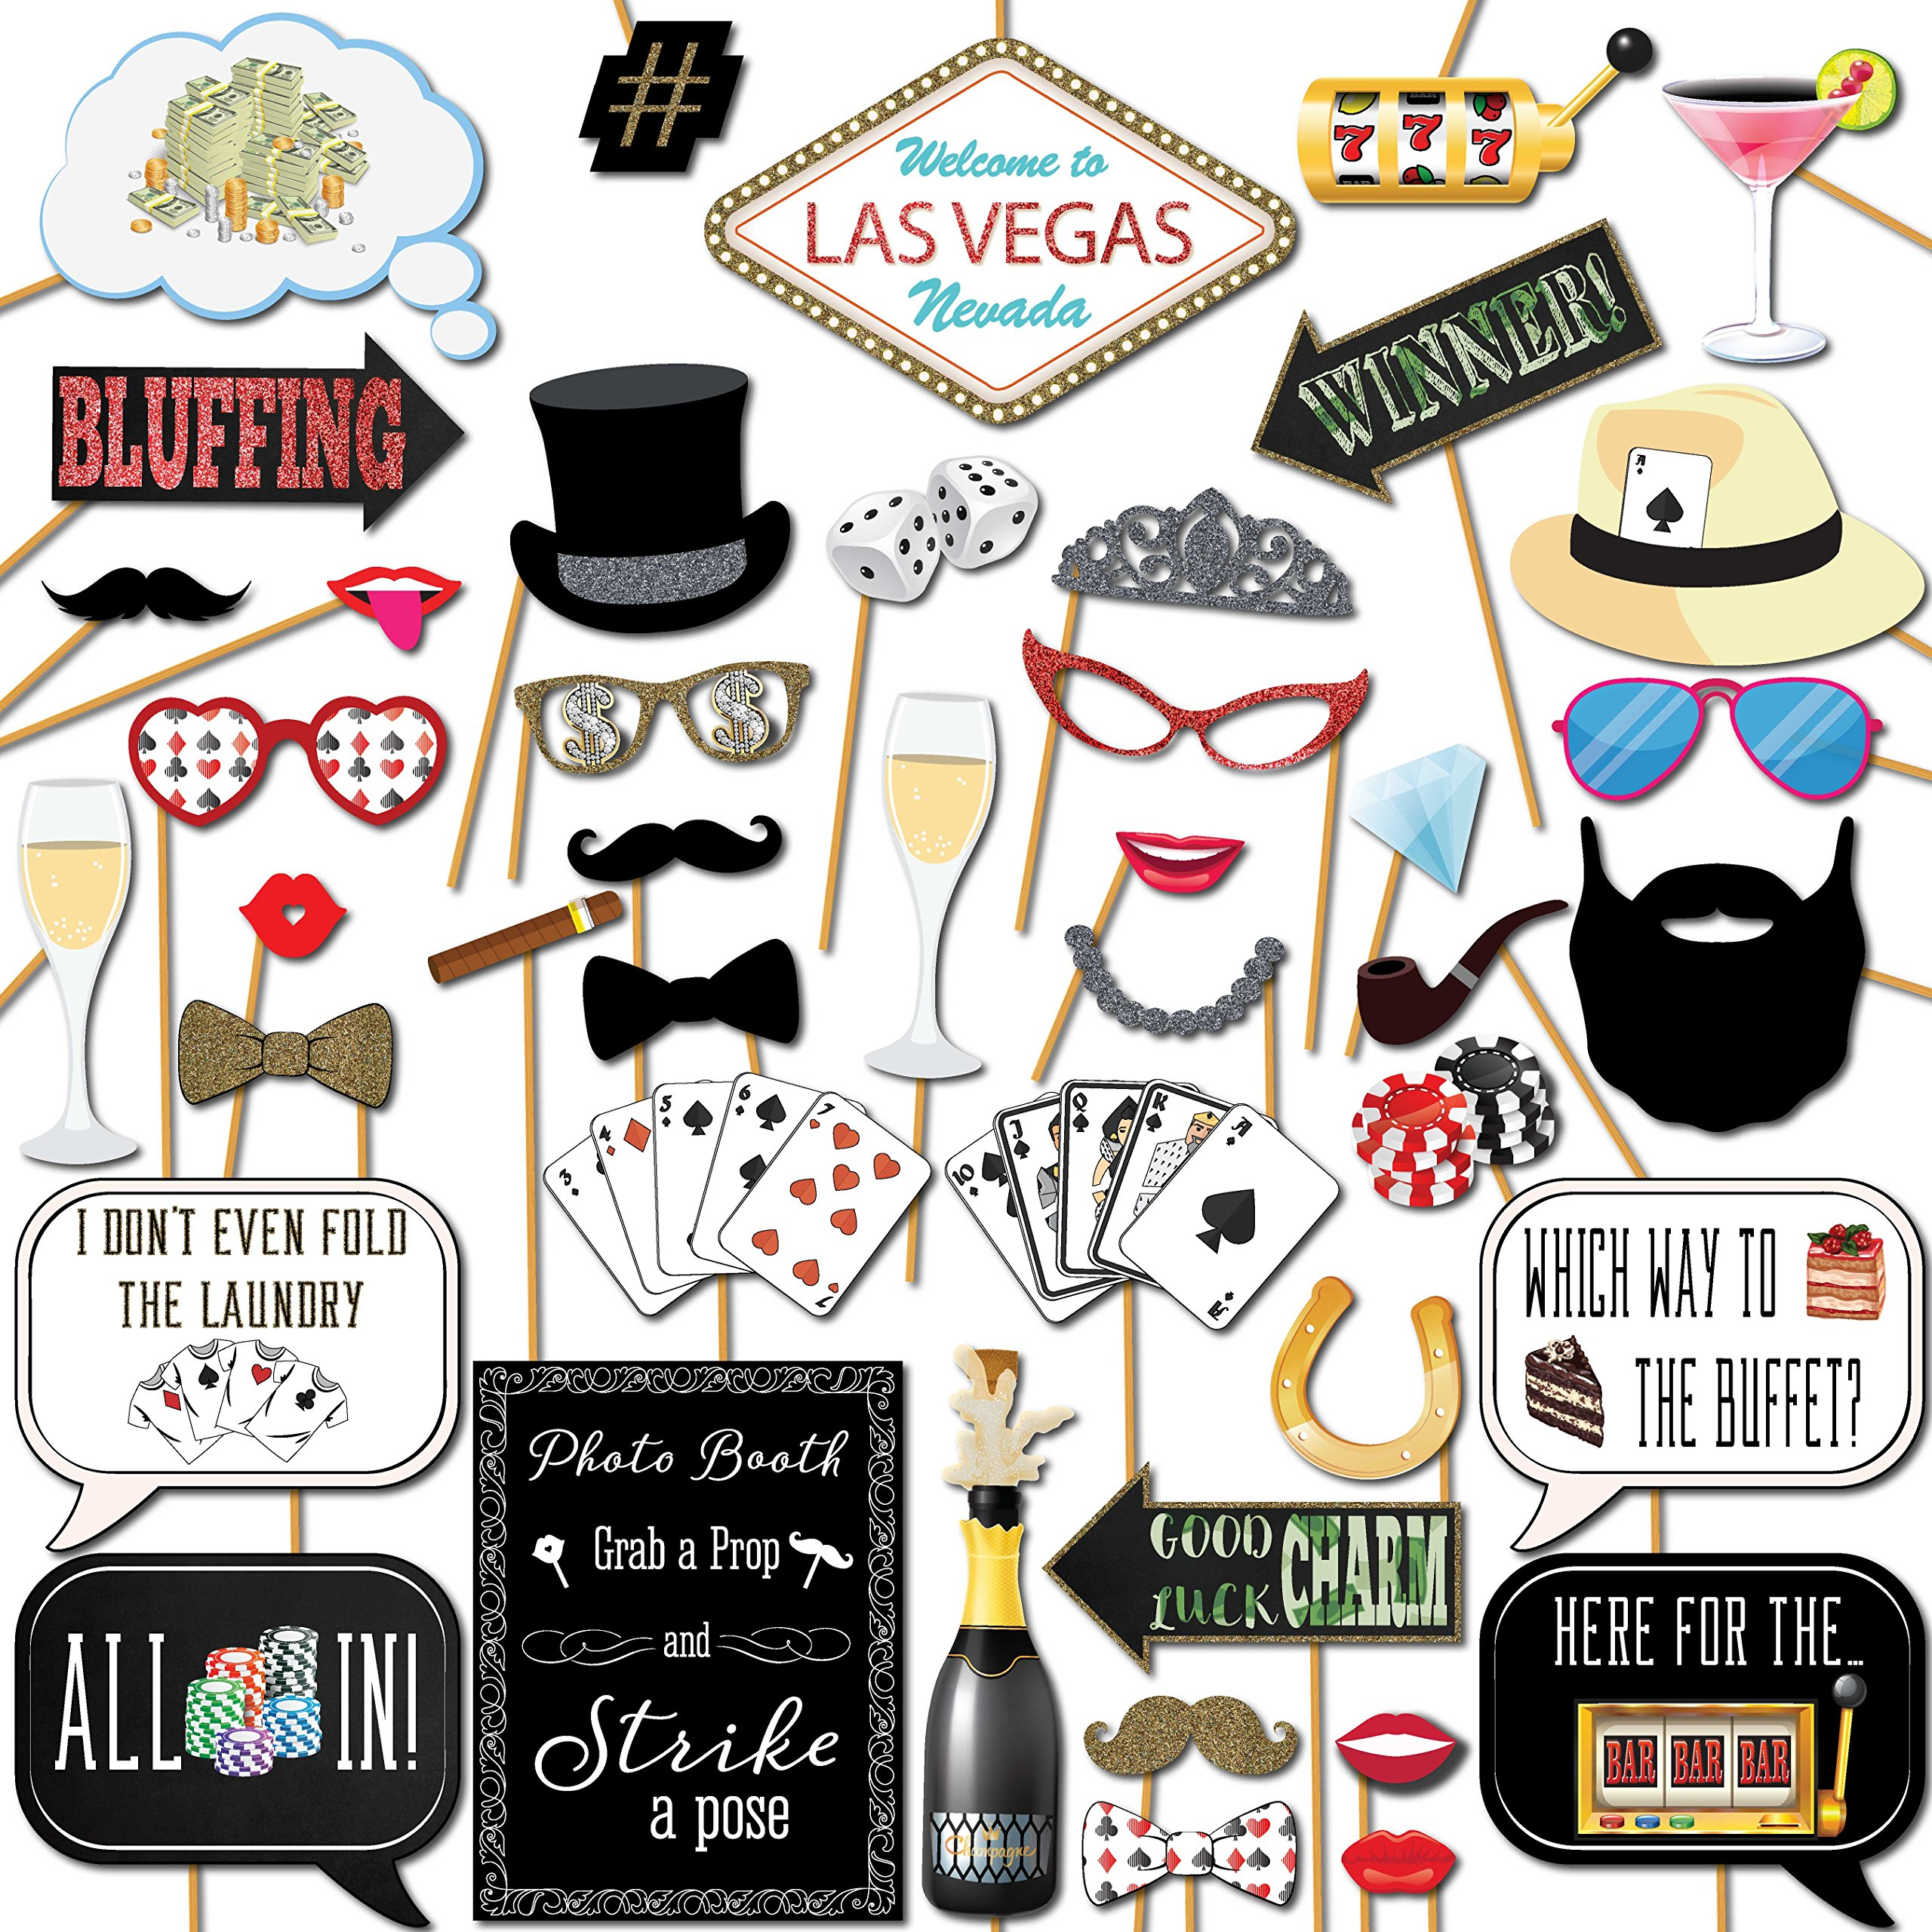 Las Vegas Casino Photo Booth Props Kit 44 Pieces With Wooden Sticks